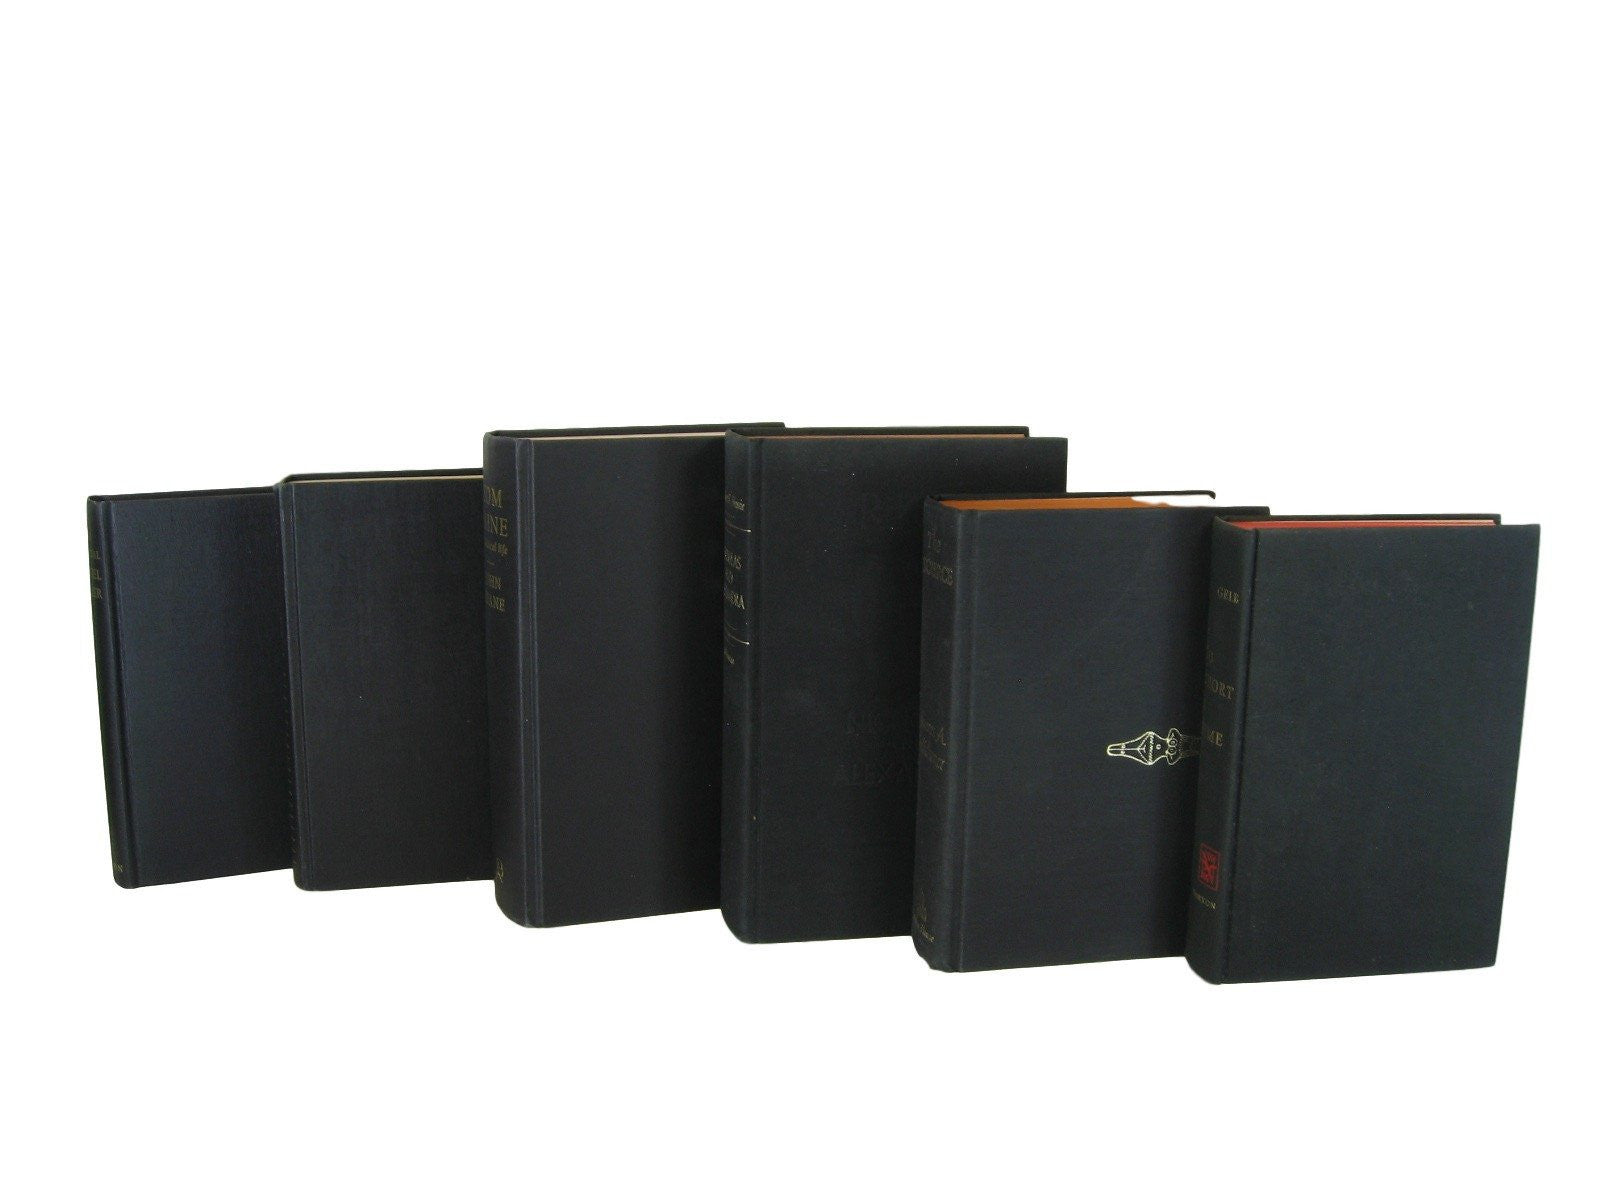 Black Vintage Hardcover Books,  Decorative Vintage Book Set, S/6 - Decades of Vintage